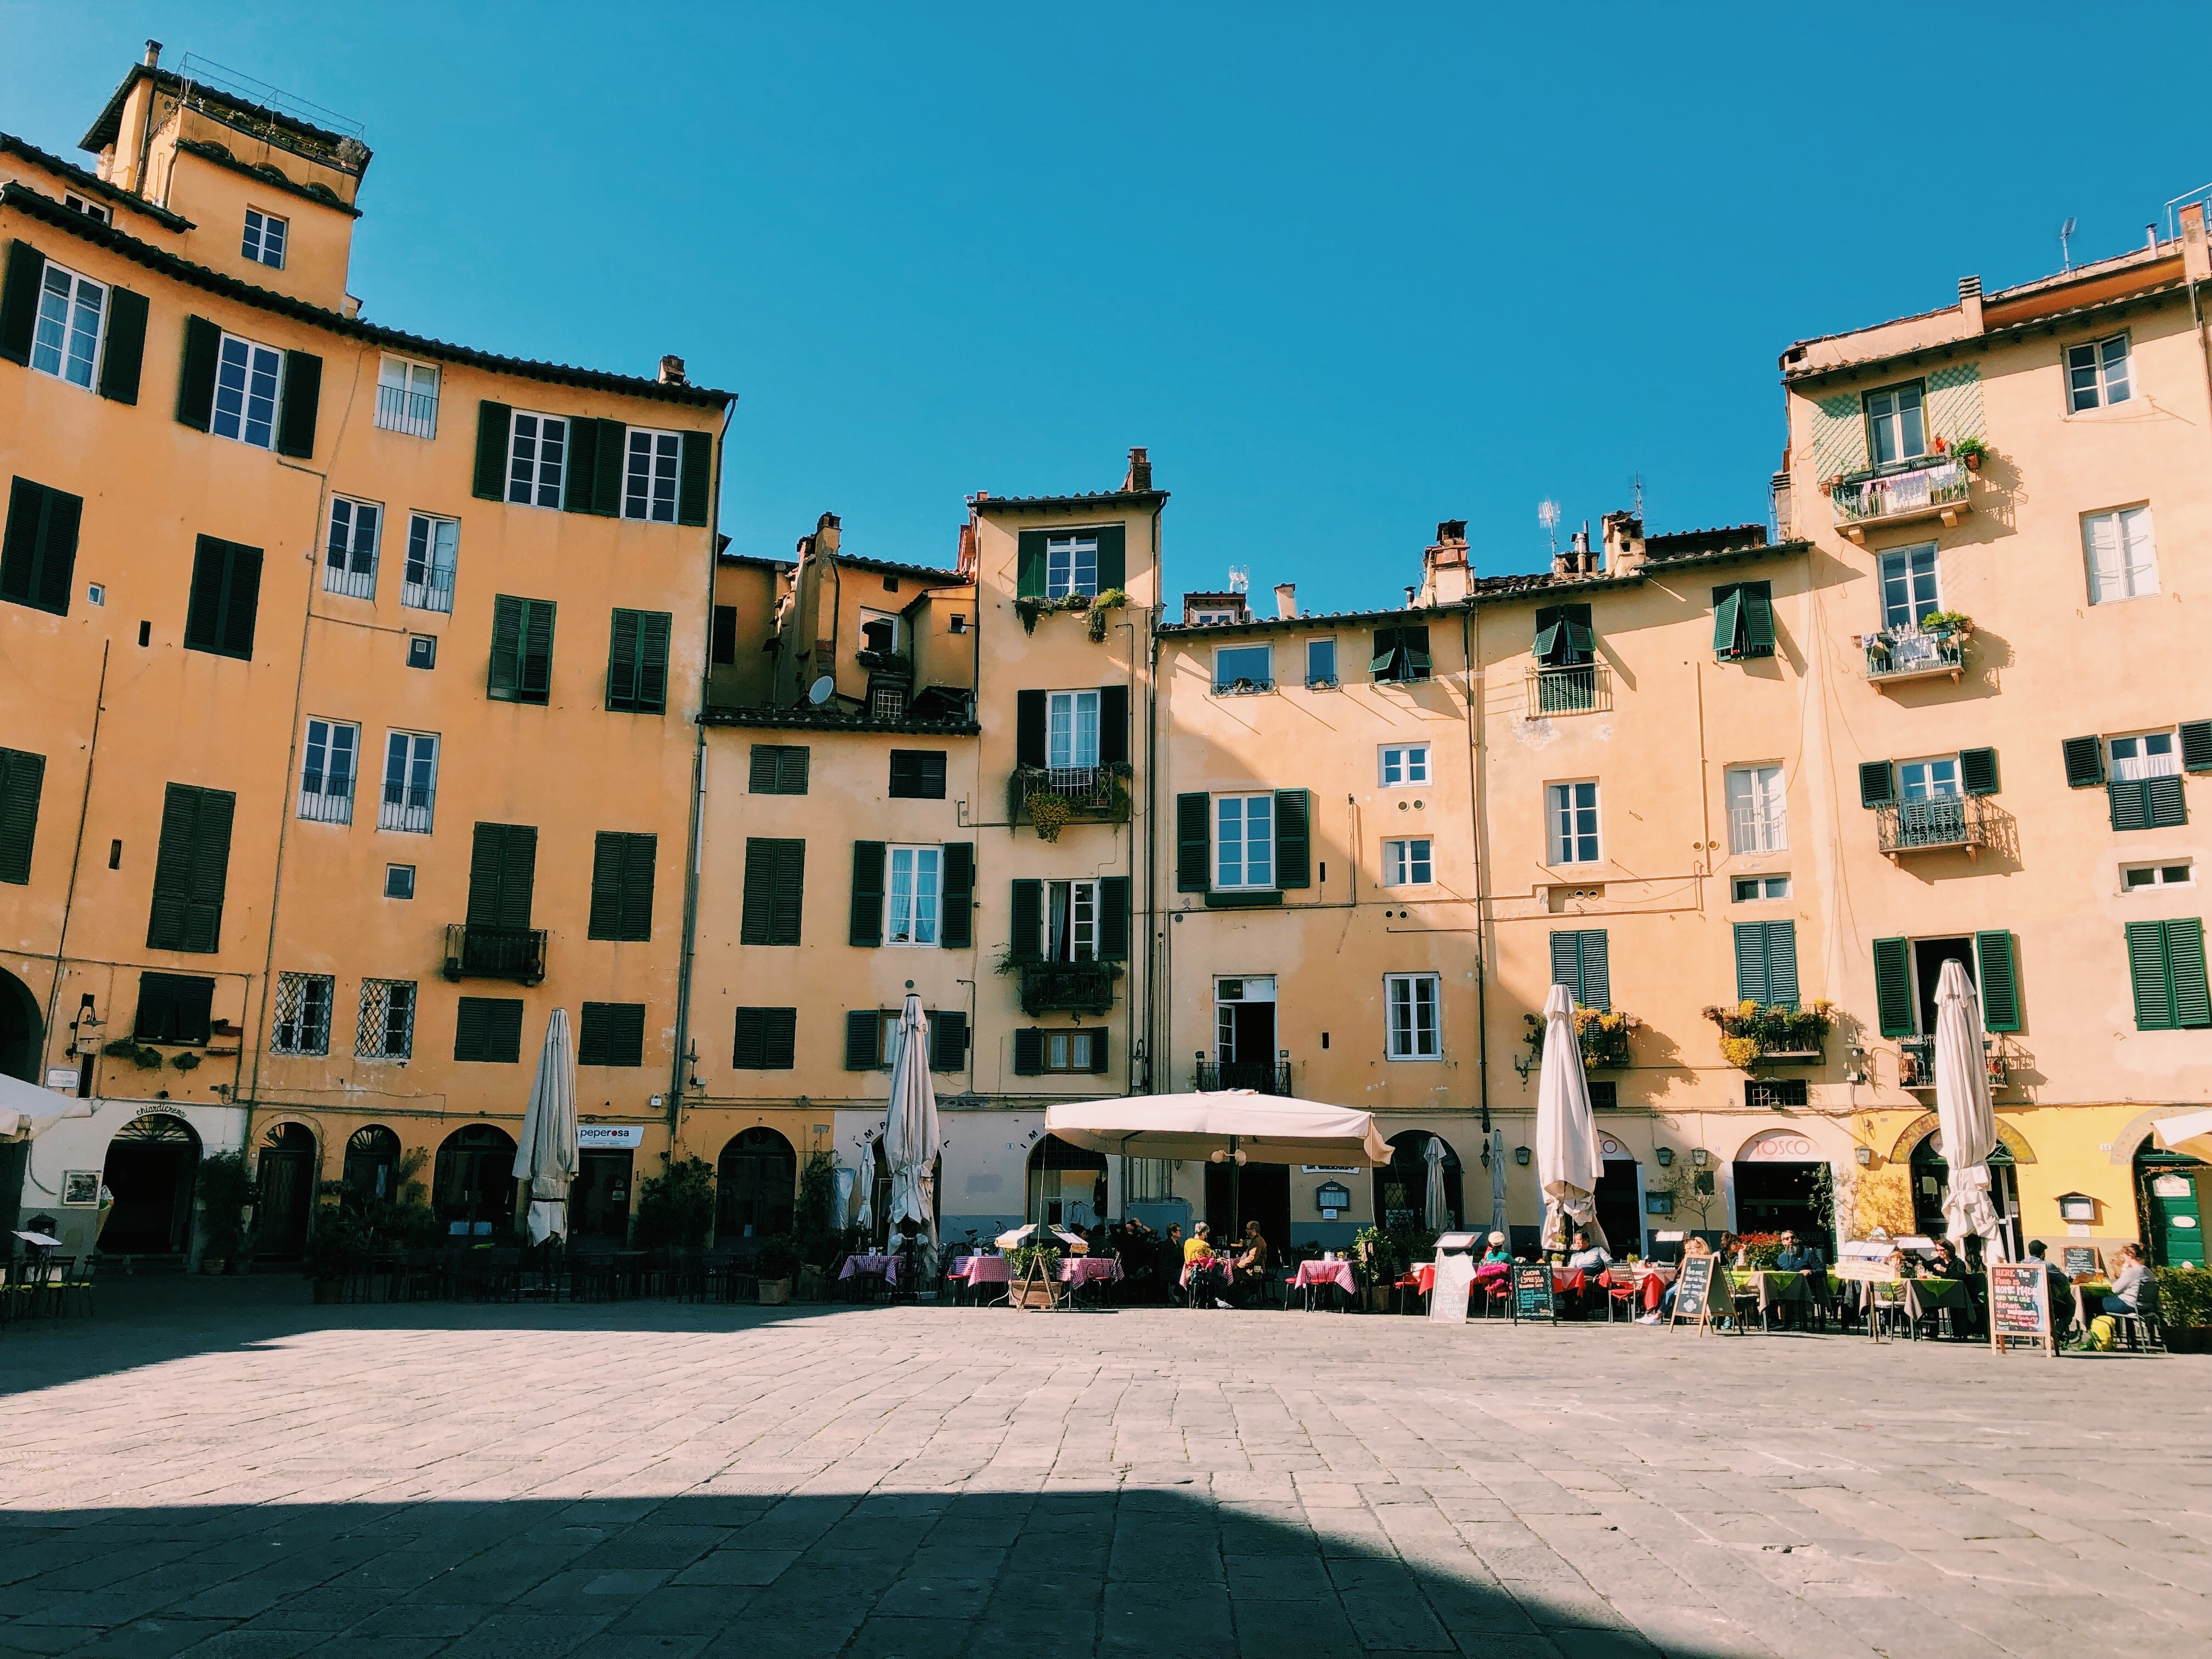 a day trip to lucca, italy